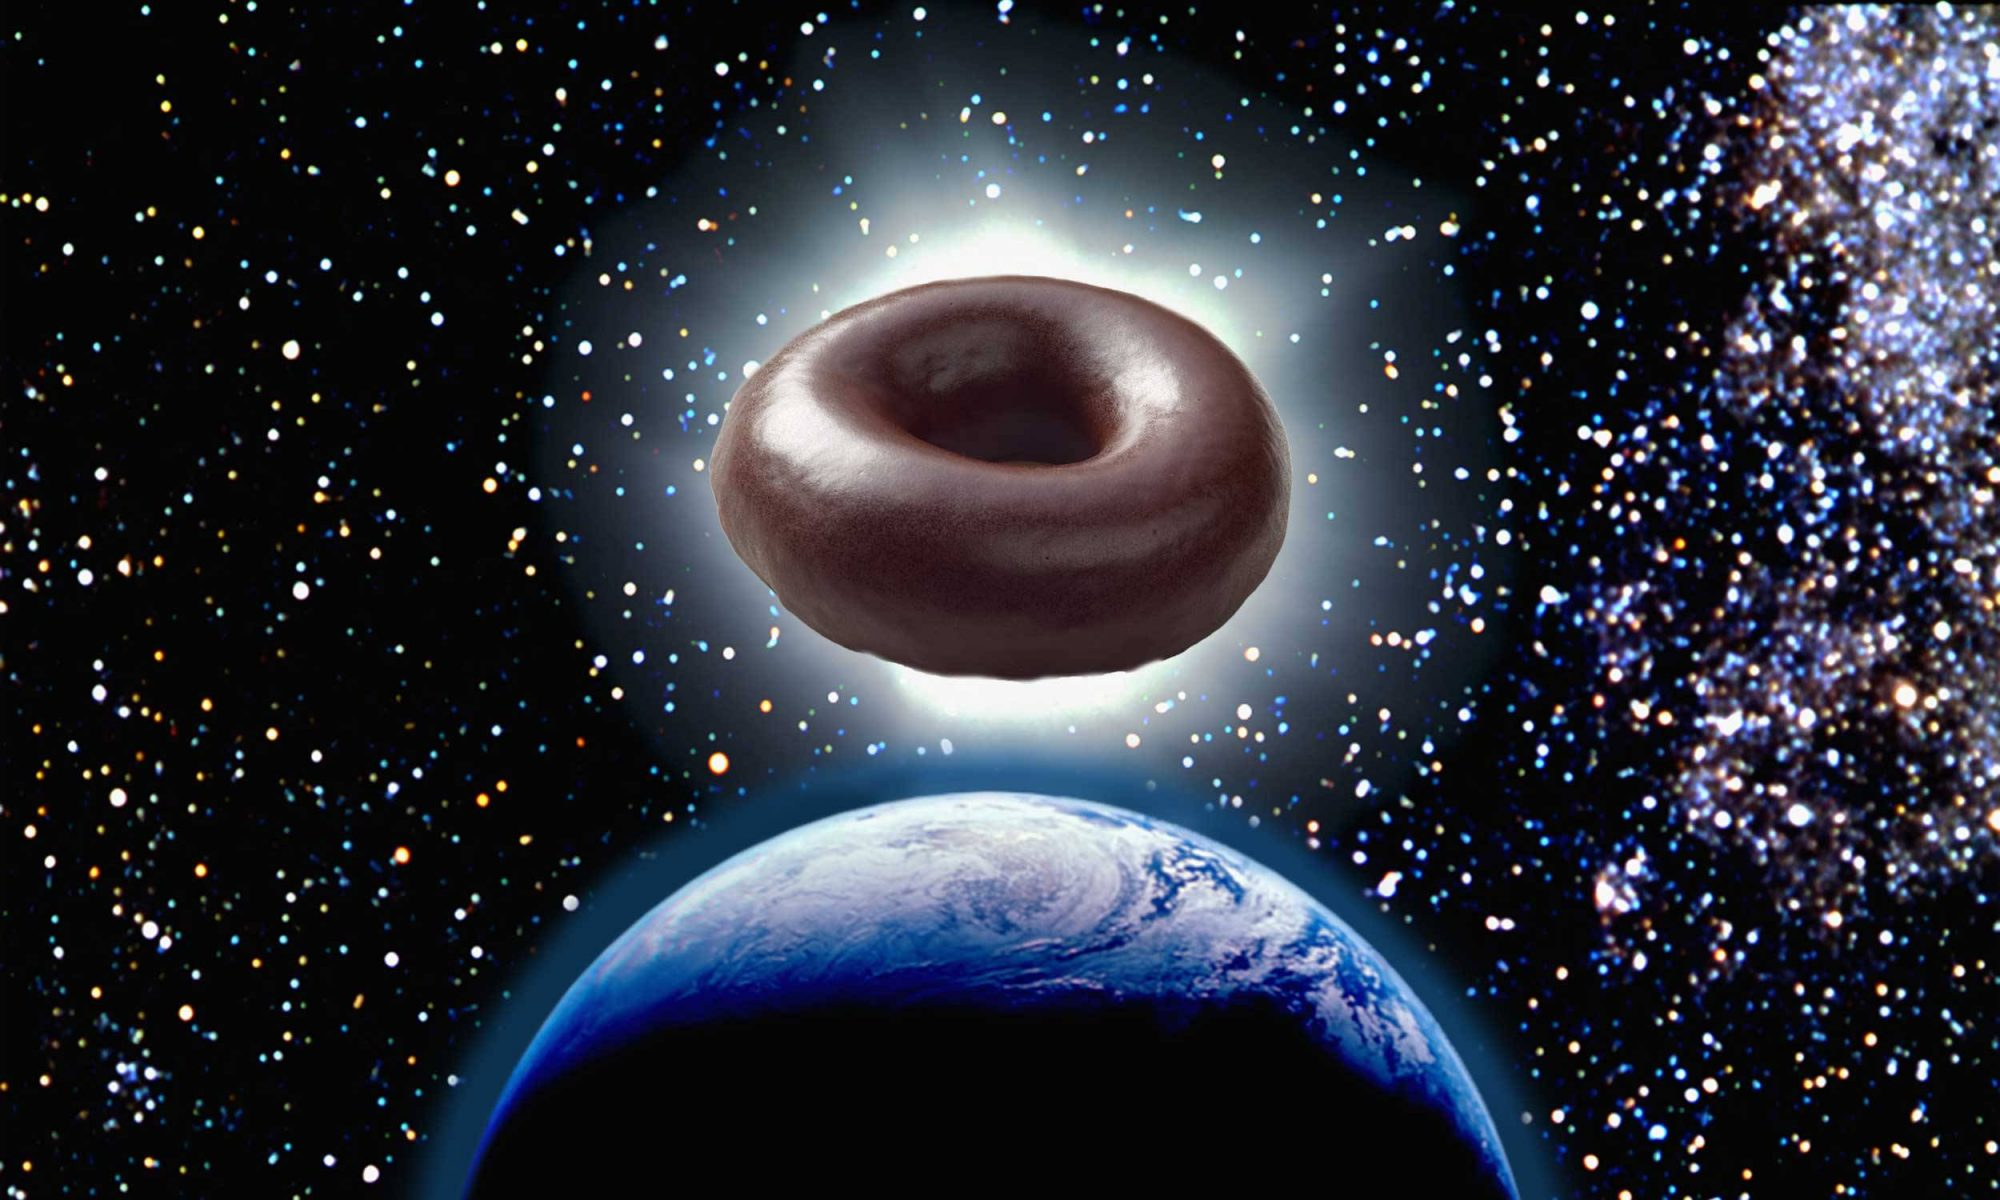 Krispy Kreme's Solar Eclipse Doughnuts Are Covered in Chocolate